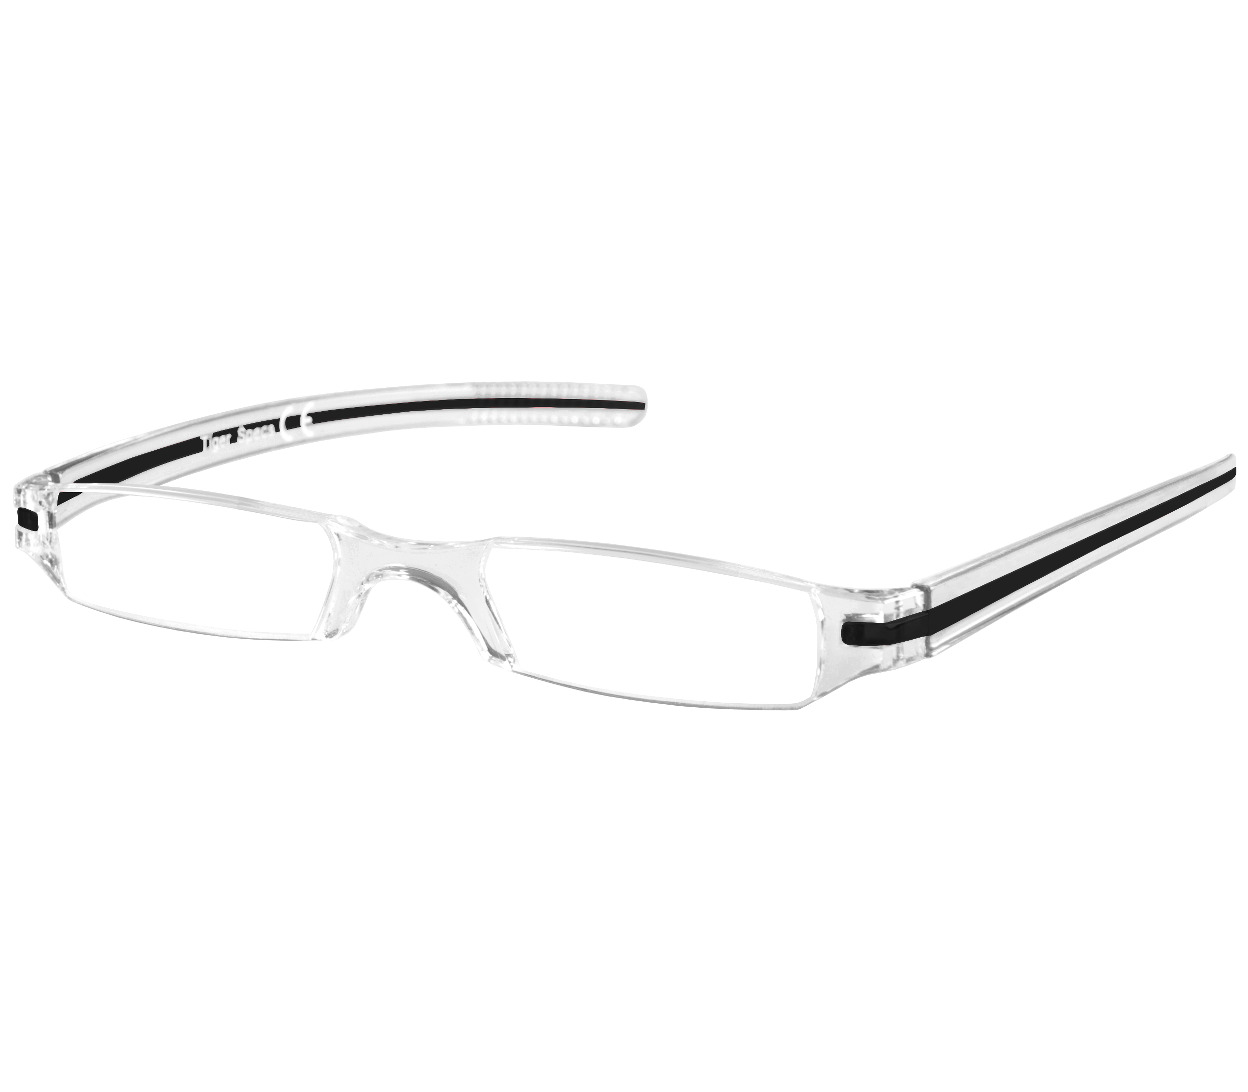 Main Image (Angle) - Soda (Black) Tube Reading Glasses